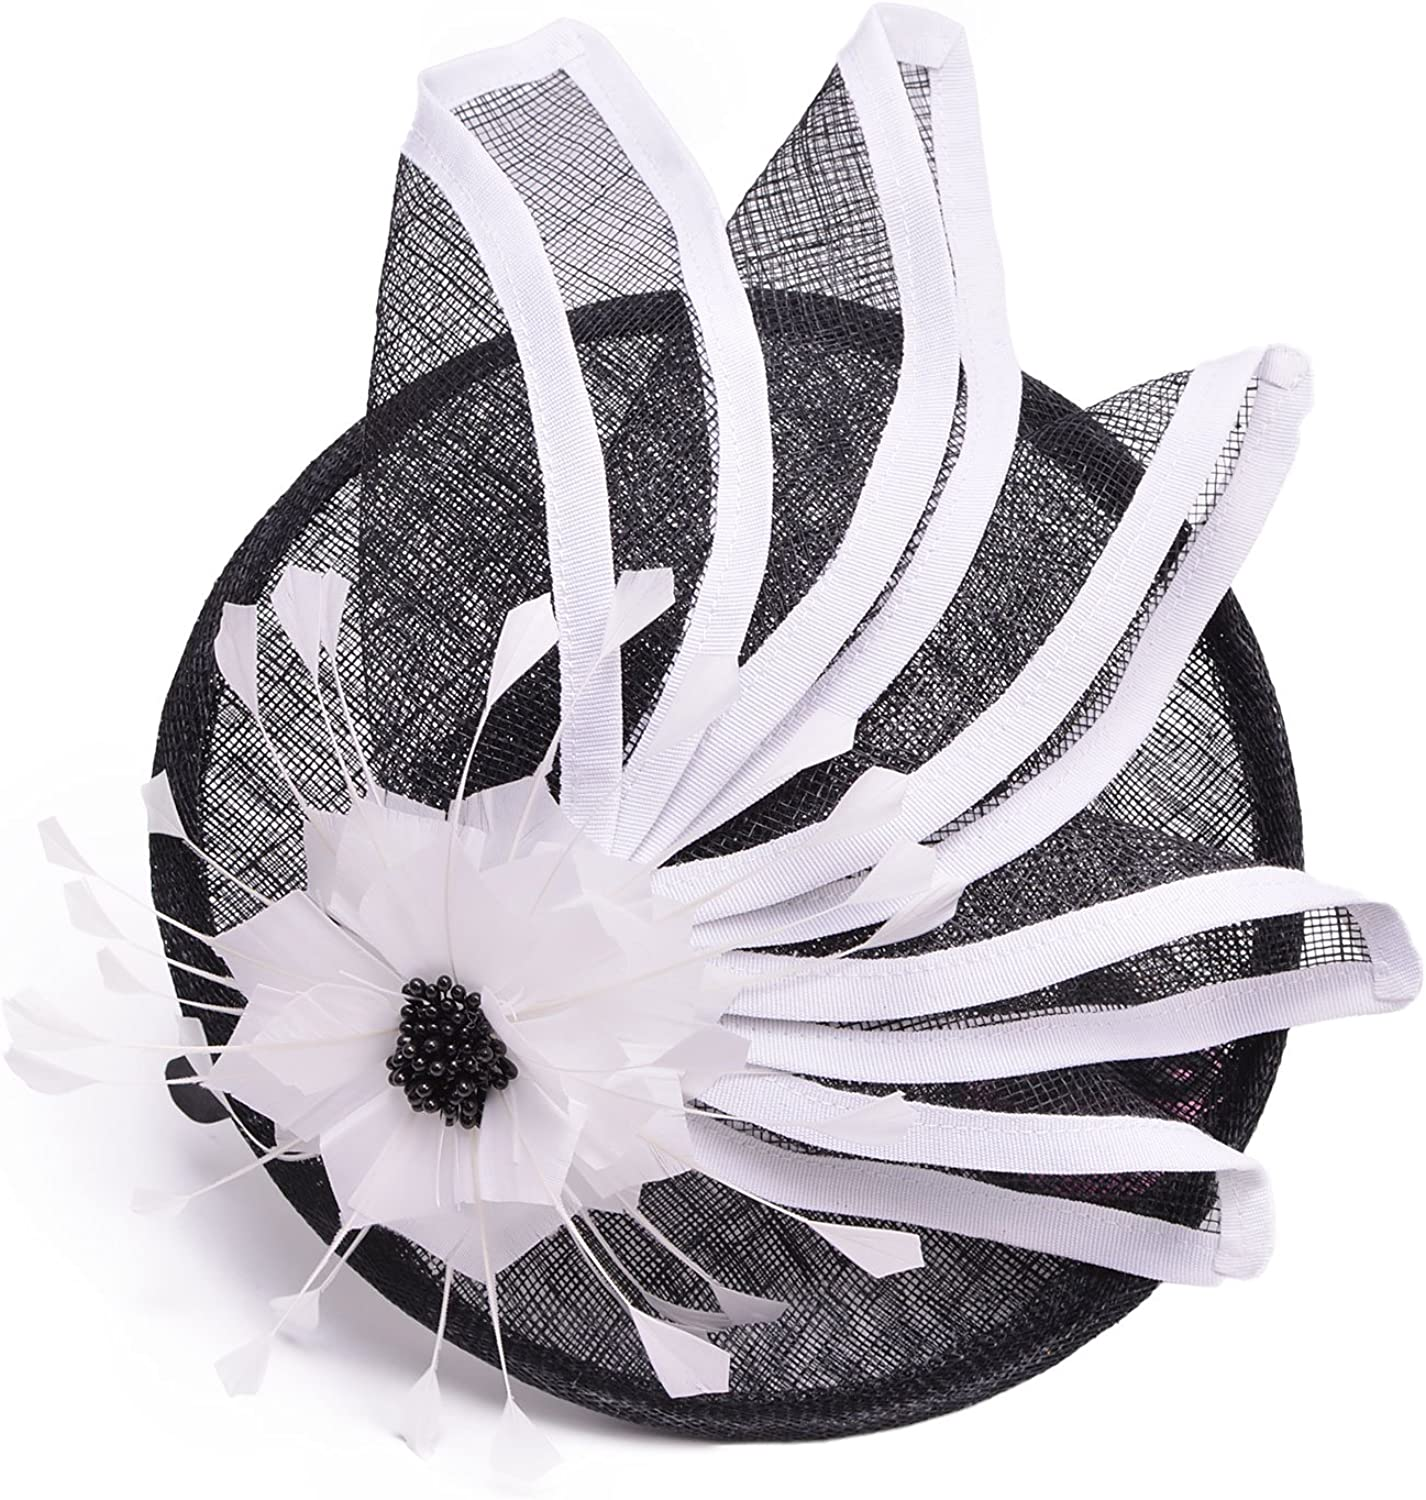 Lawliet Womens Black Max 57% OFF Award-winning store Mix White Party Cocktail Fascinator Sinamay